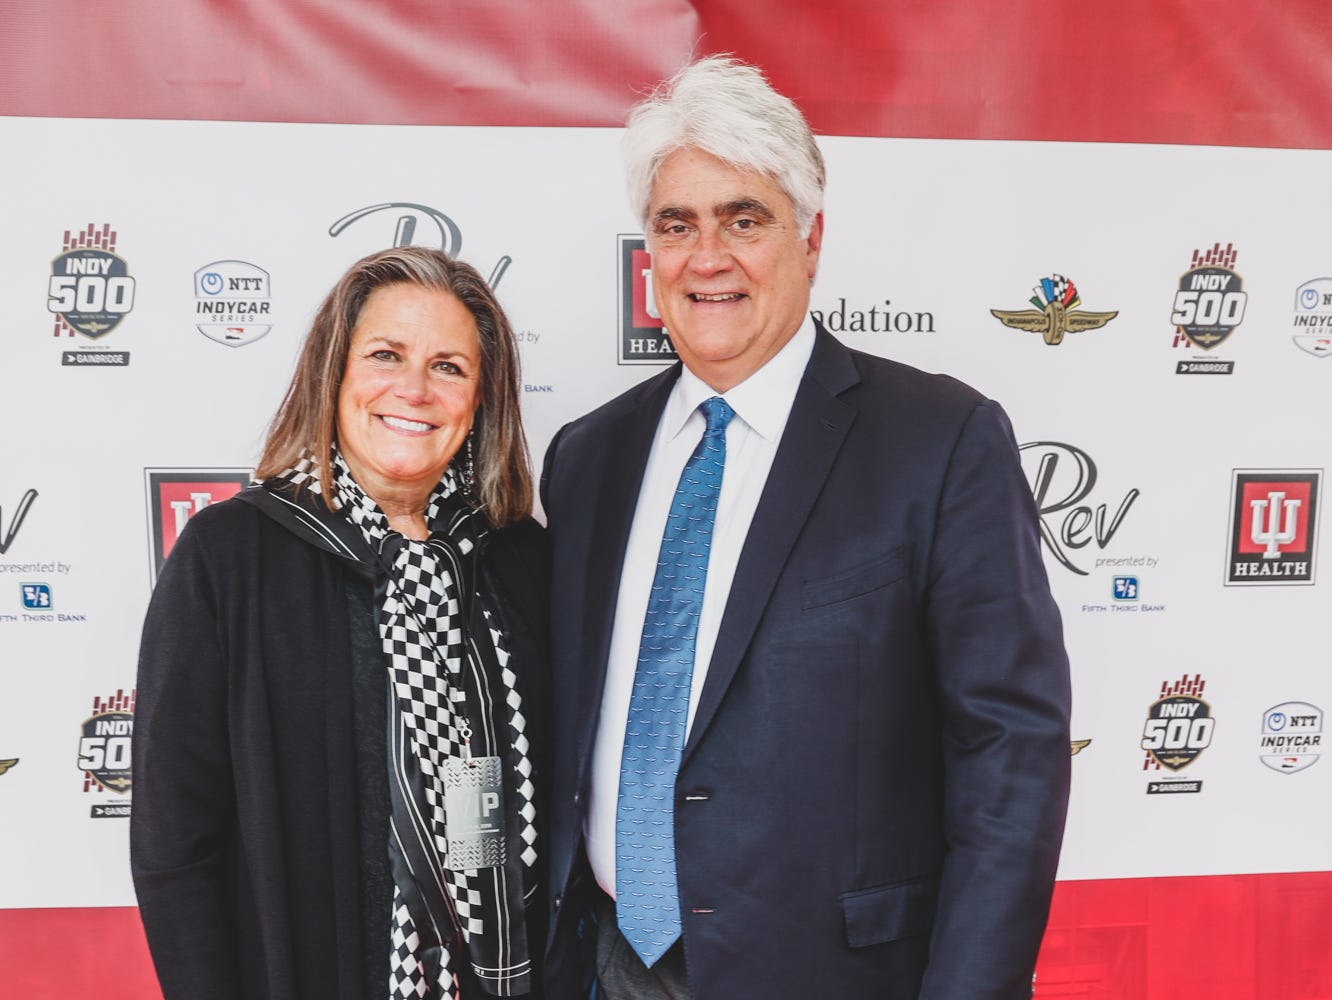 President and Chief Executive Officer of Hulman & Company, Mark Miles and his wife Hellen Miles walk the red carpet at the Rev Indy fundraiser, held at the Indianapolis Motor Speedway on Saturday, May 4, 2019. Funds raised support the IU Health Foundation statewide and the IU Health Emergency Medical Center at IMS.